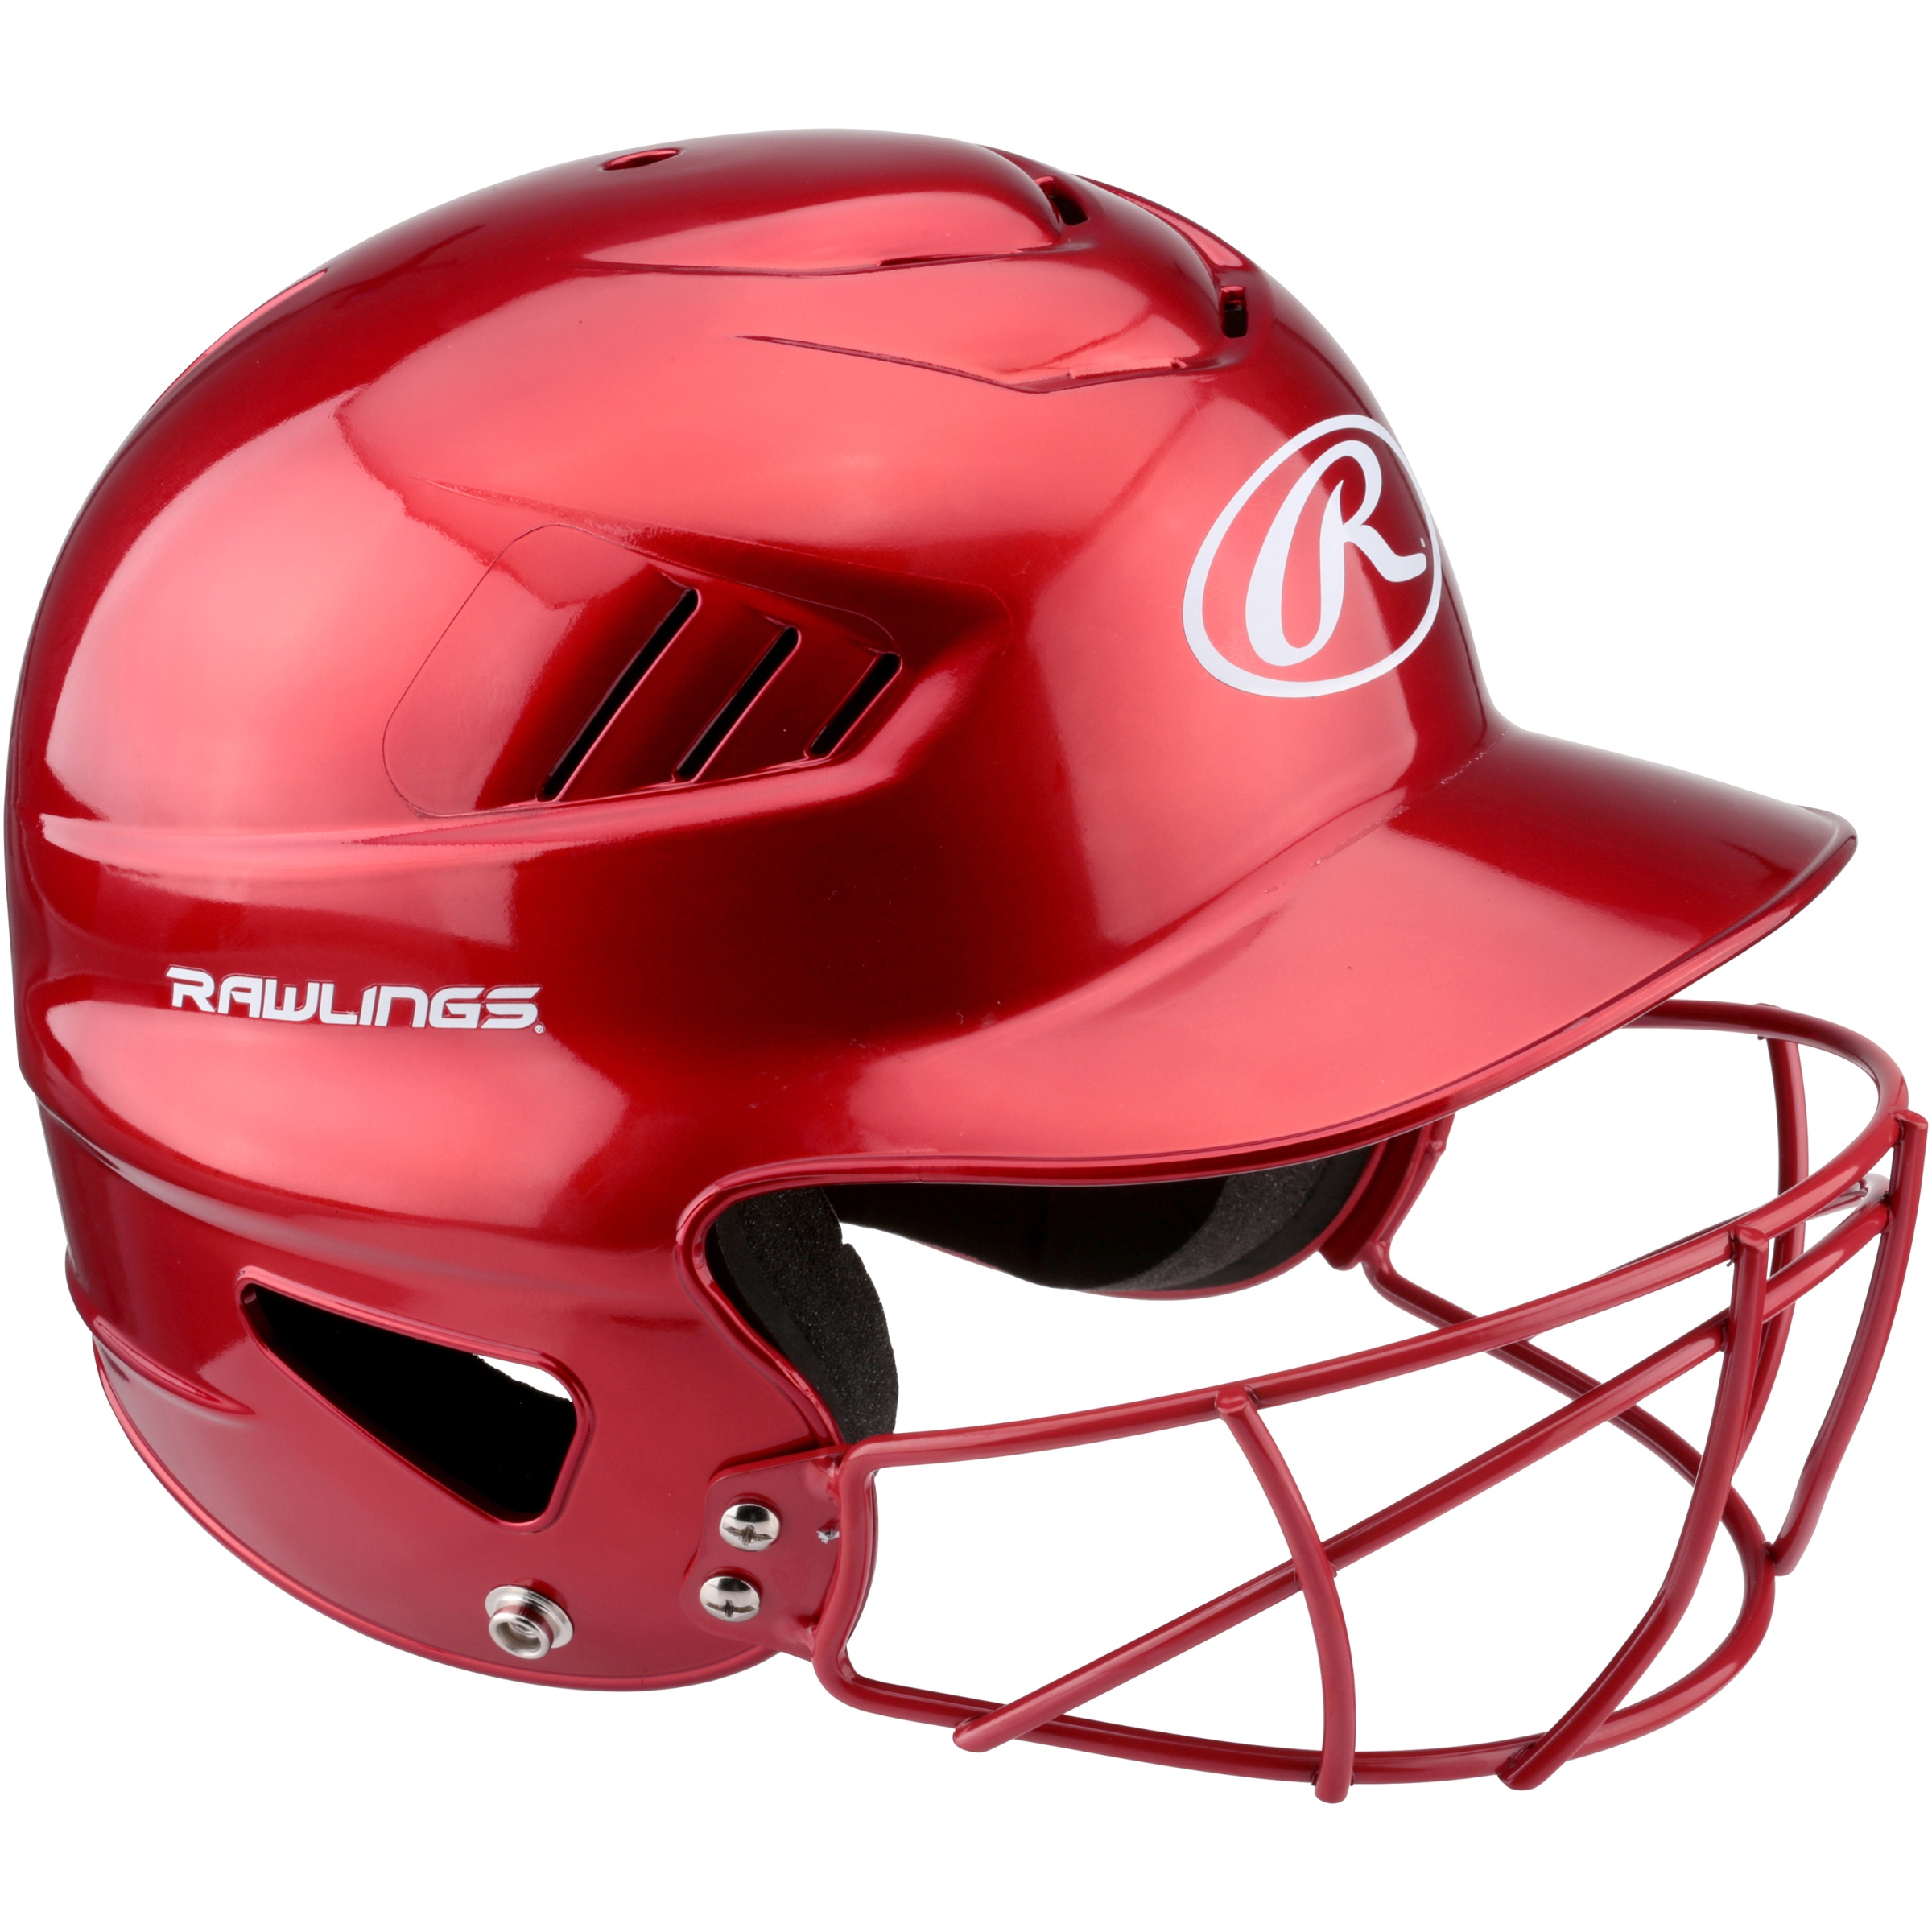 Rawlings Vapor Batter's Helmet Face Guard